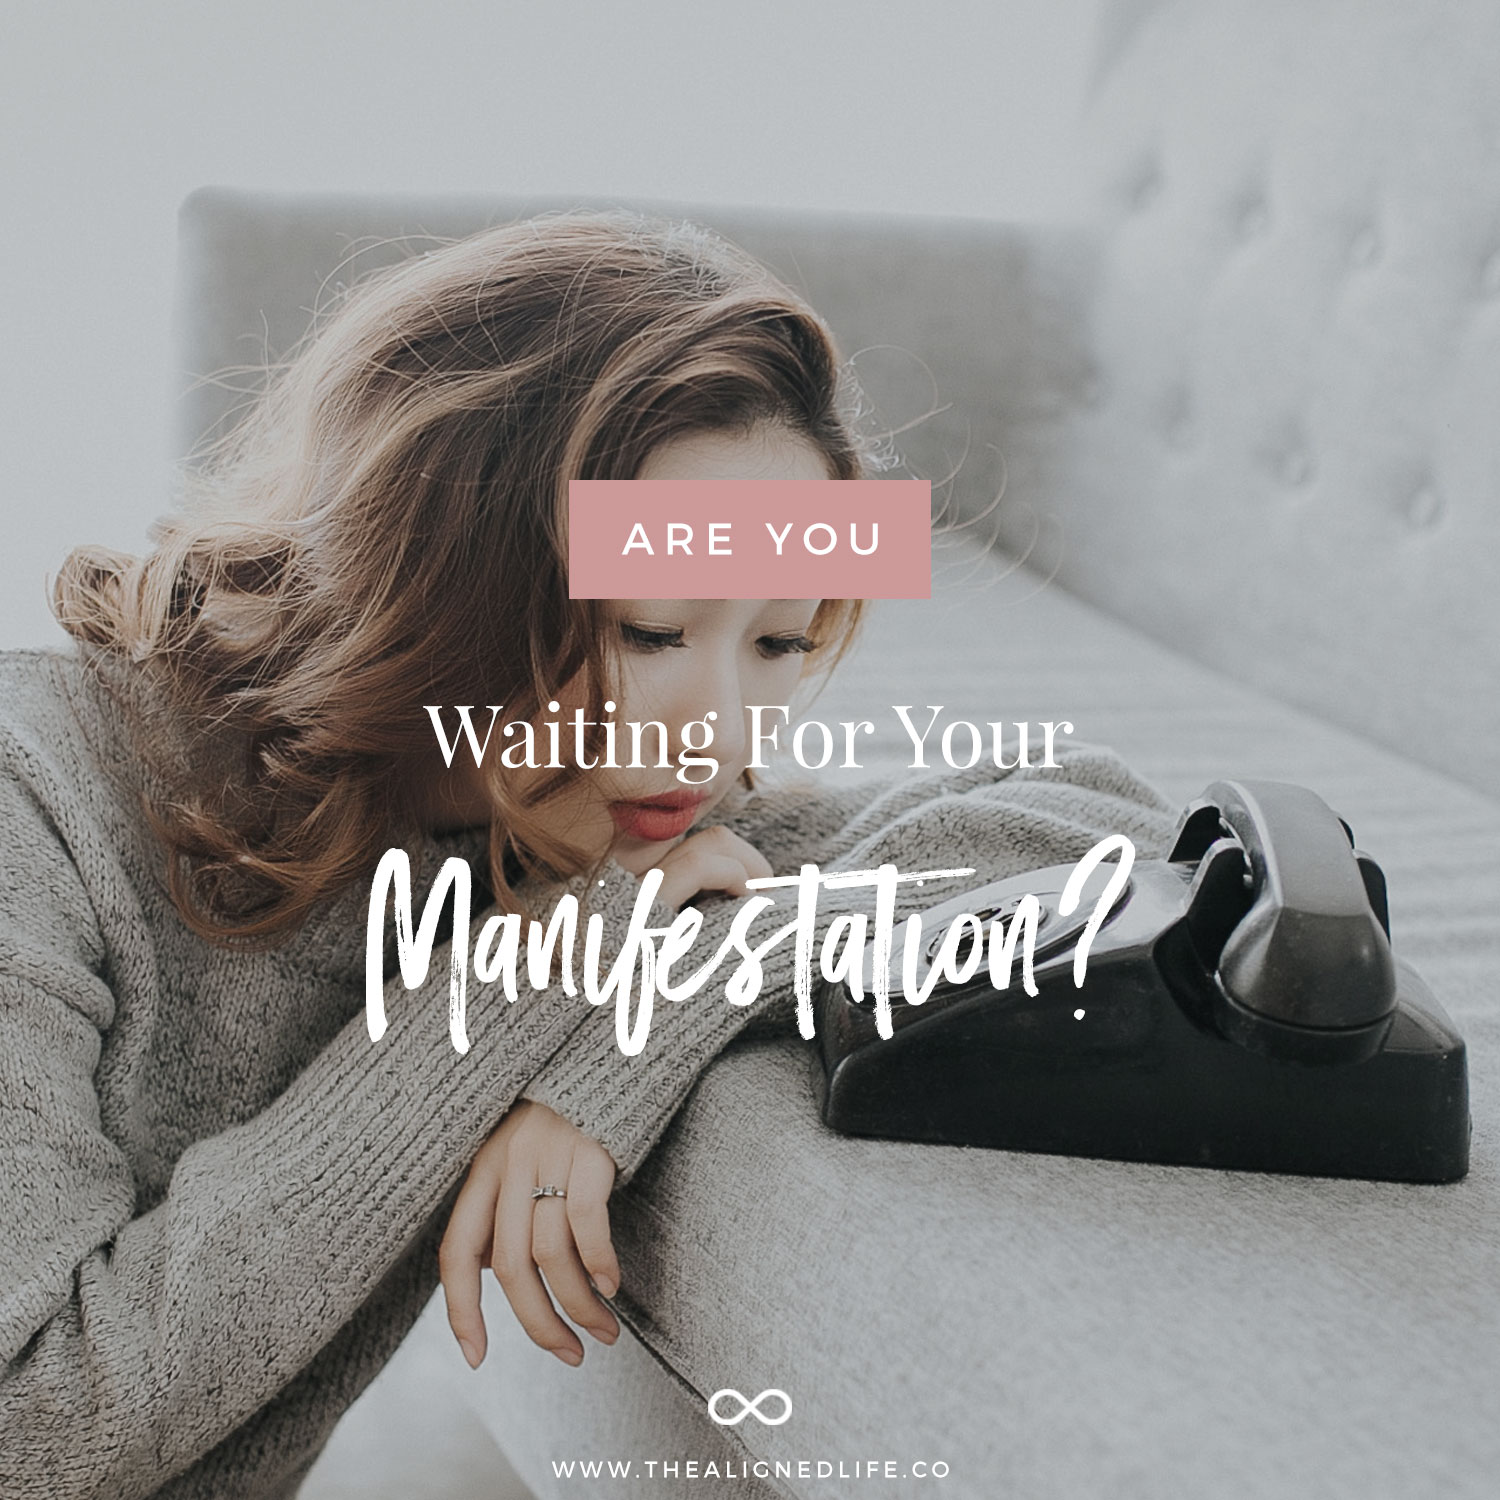 Are You Waiting For Your Manifestation?